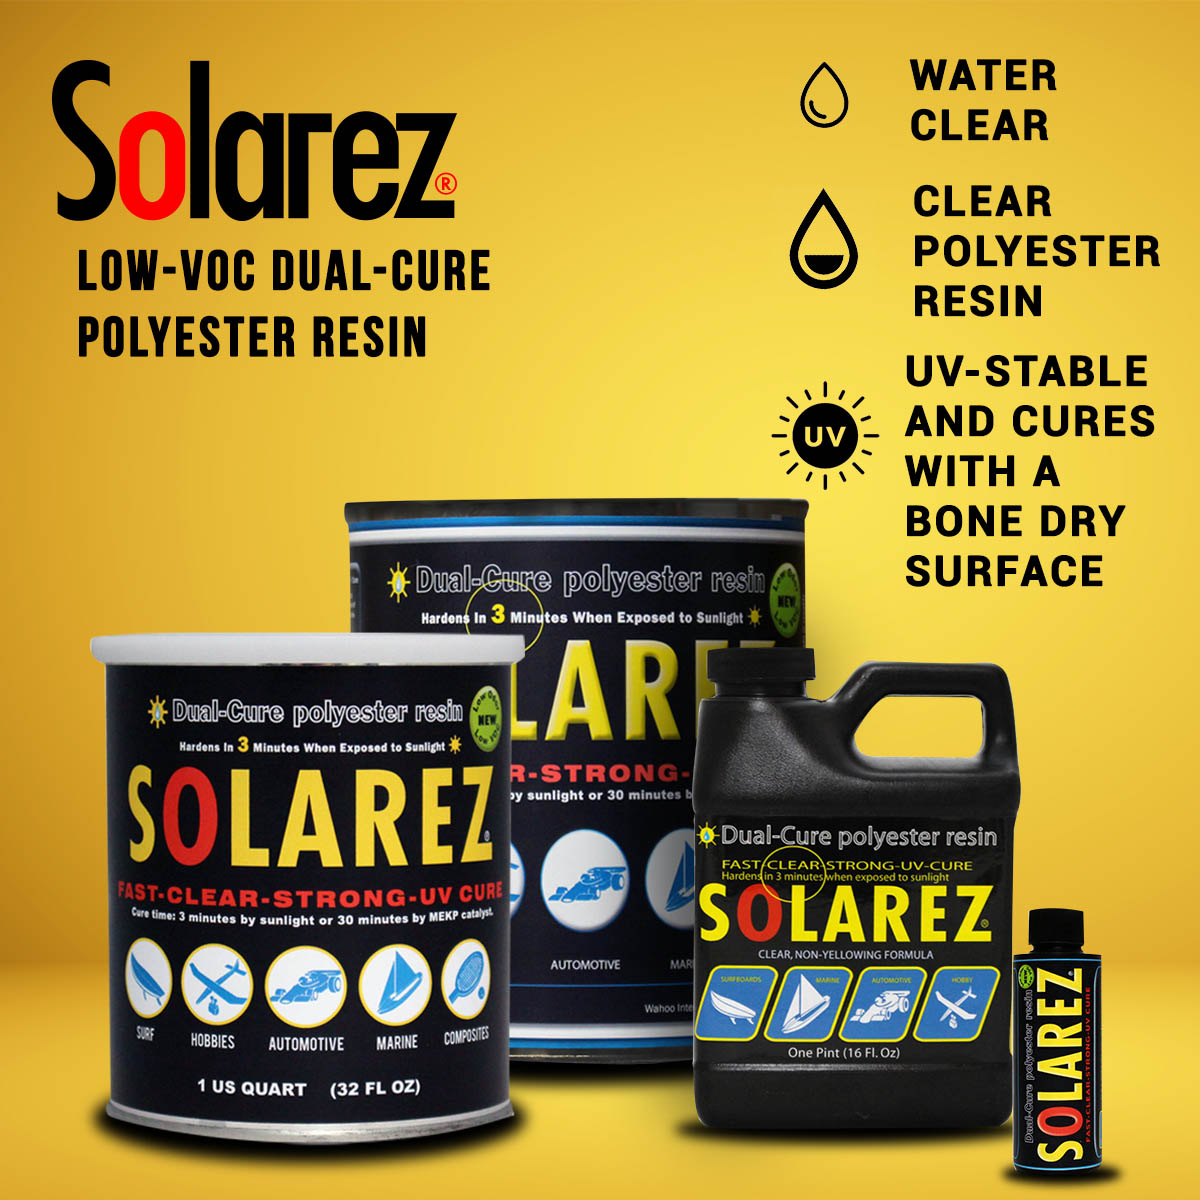 Low-VOC Dual-Cure Polyester Resin | Solarez UV Resins